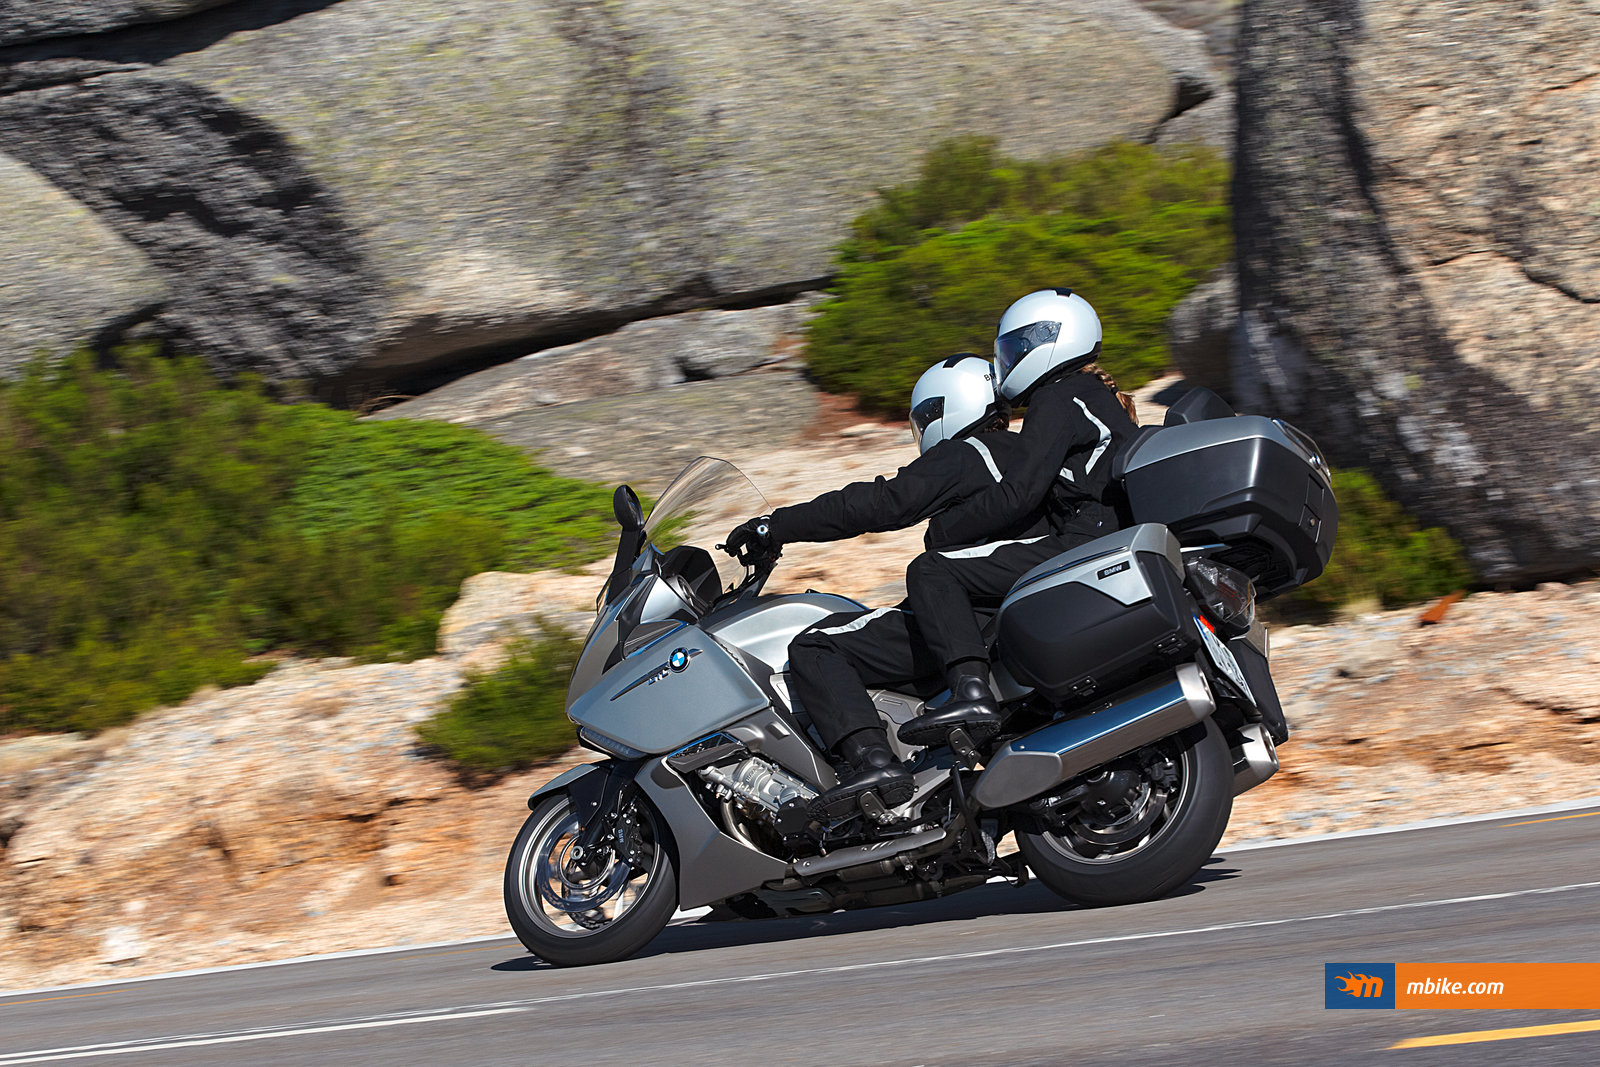 2011 Bmw K1600 Gtl Wallpaper Mbike Com